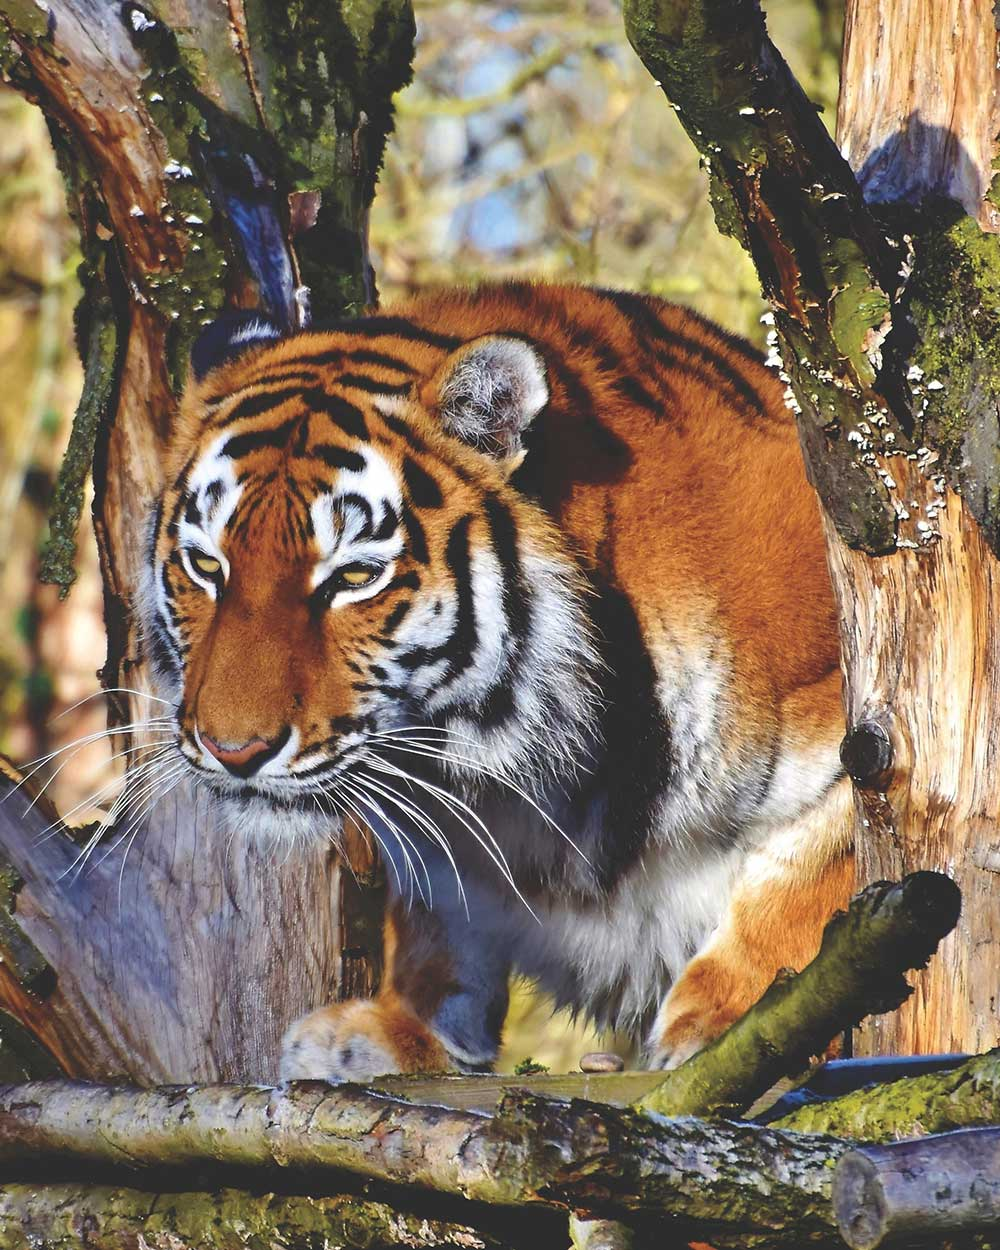 The Bengal tiger population fell from 440 in 2004 to 106 in 2015, an all time low.